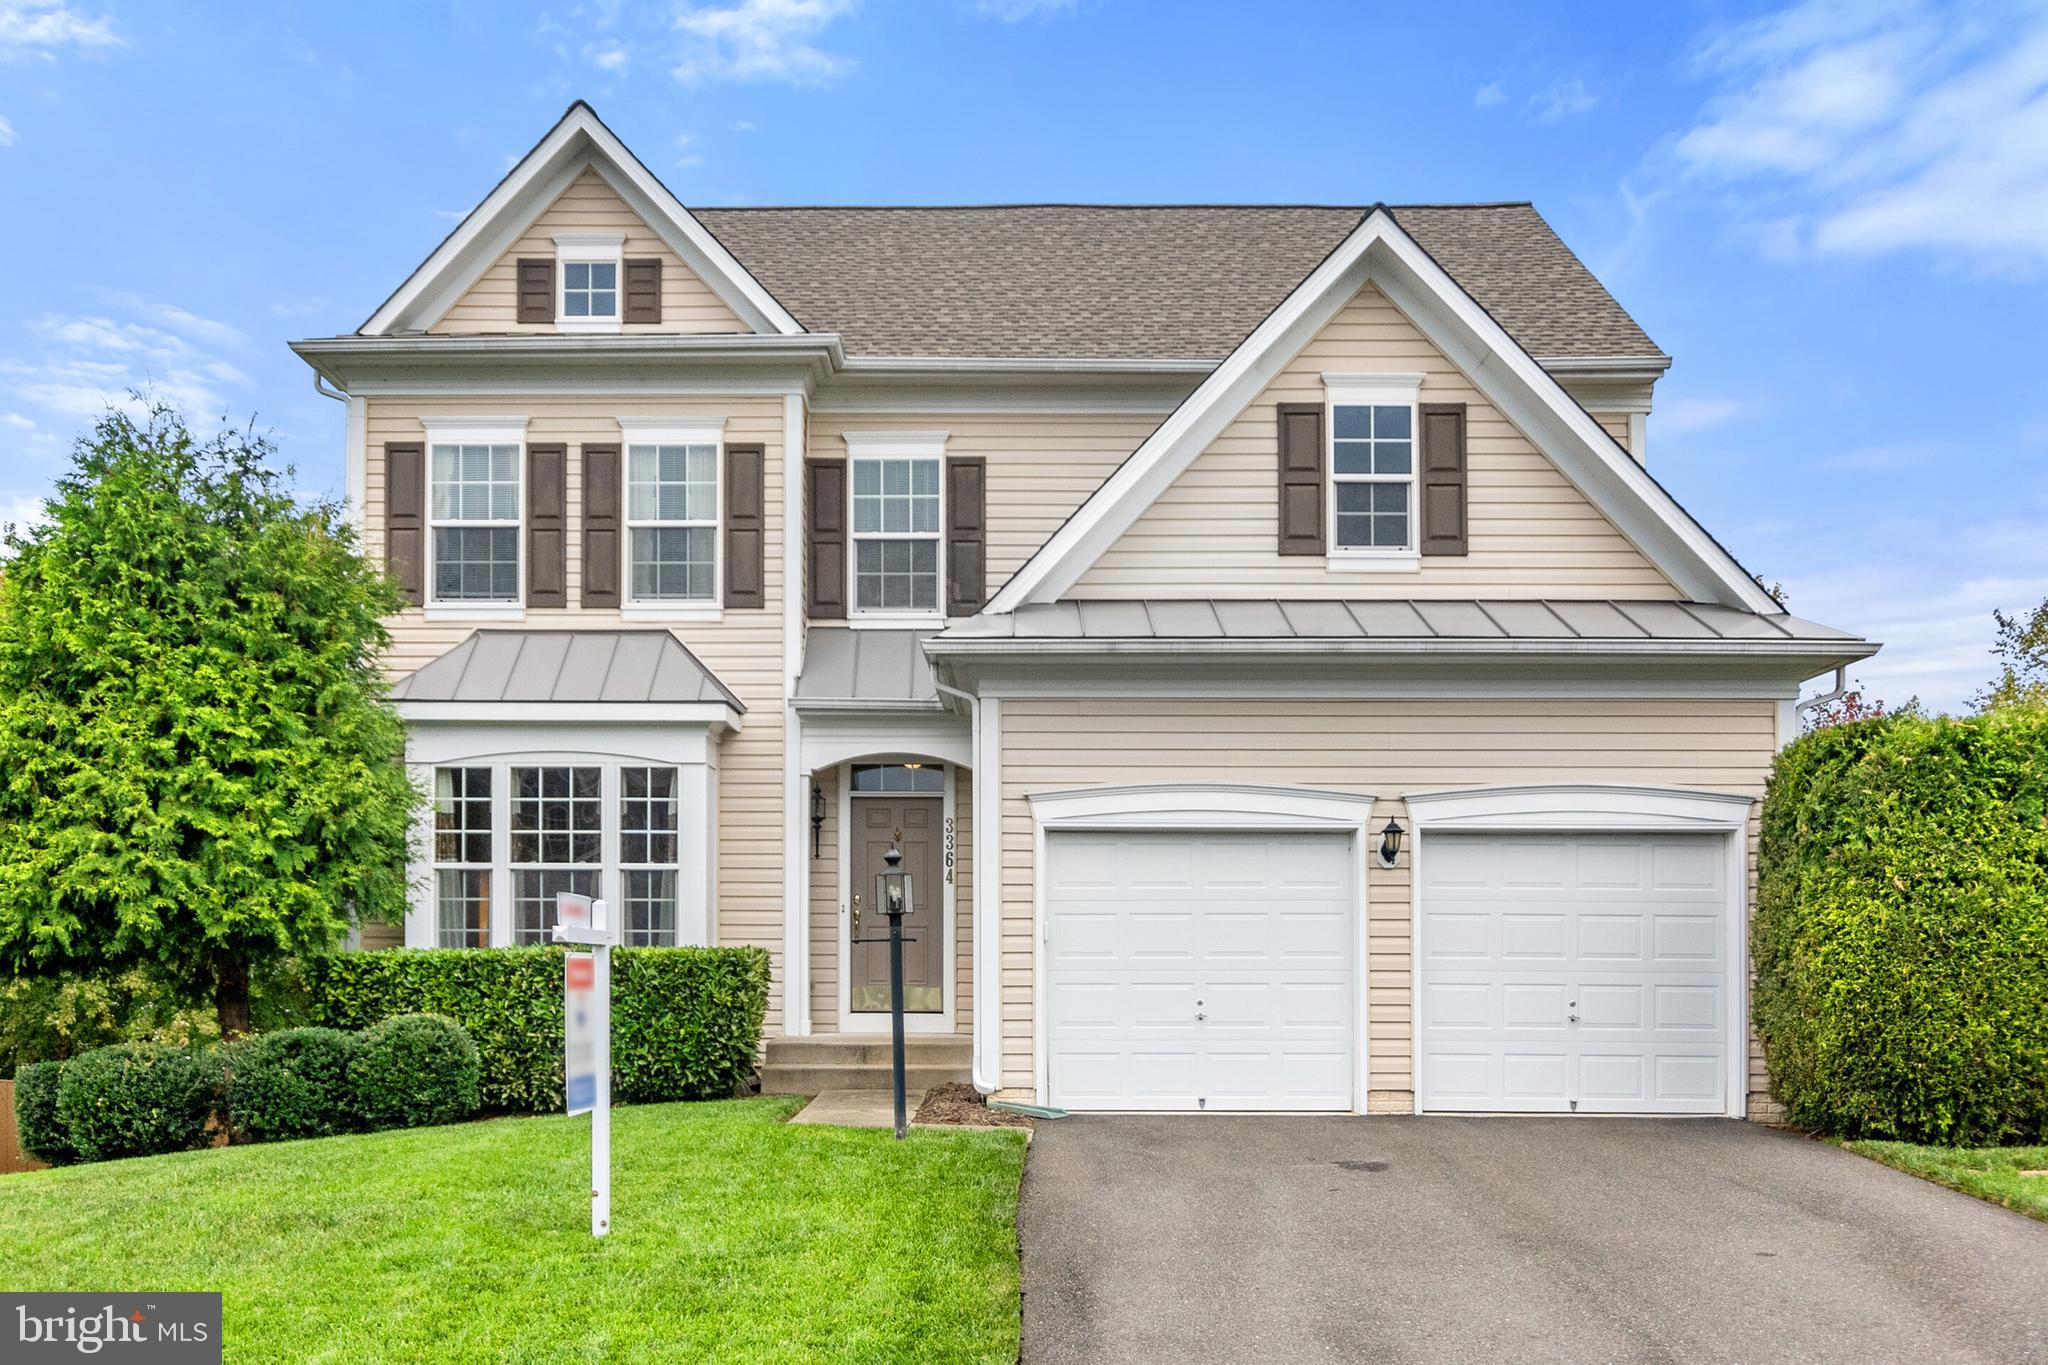 This perfect one owner home in desirable Cramers Ridge is ready for new owners. Expanded Yardley Mod